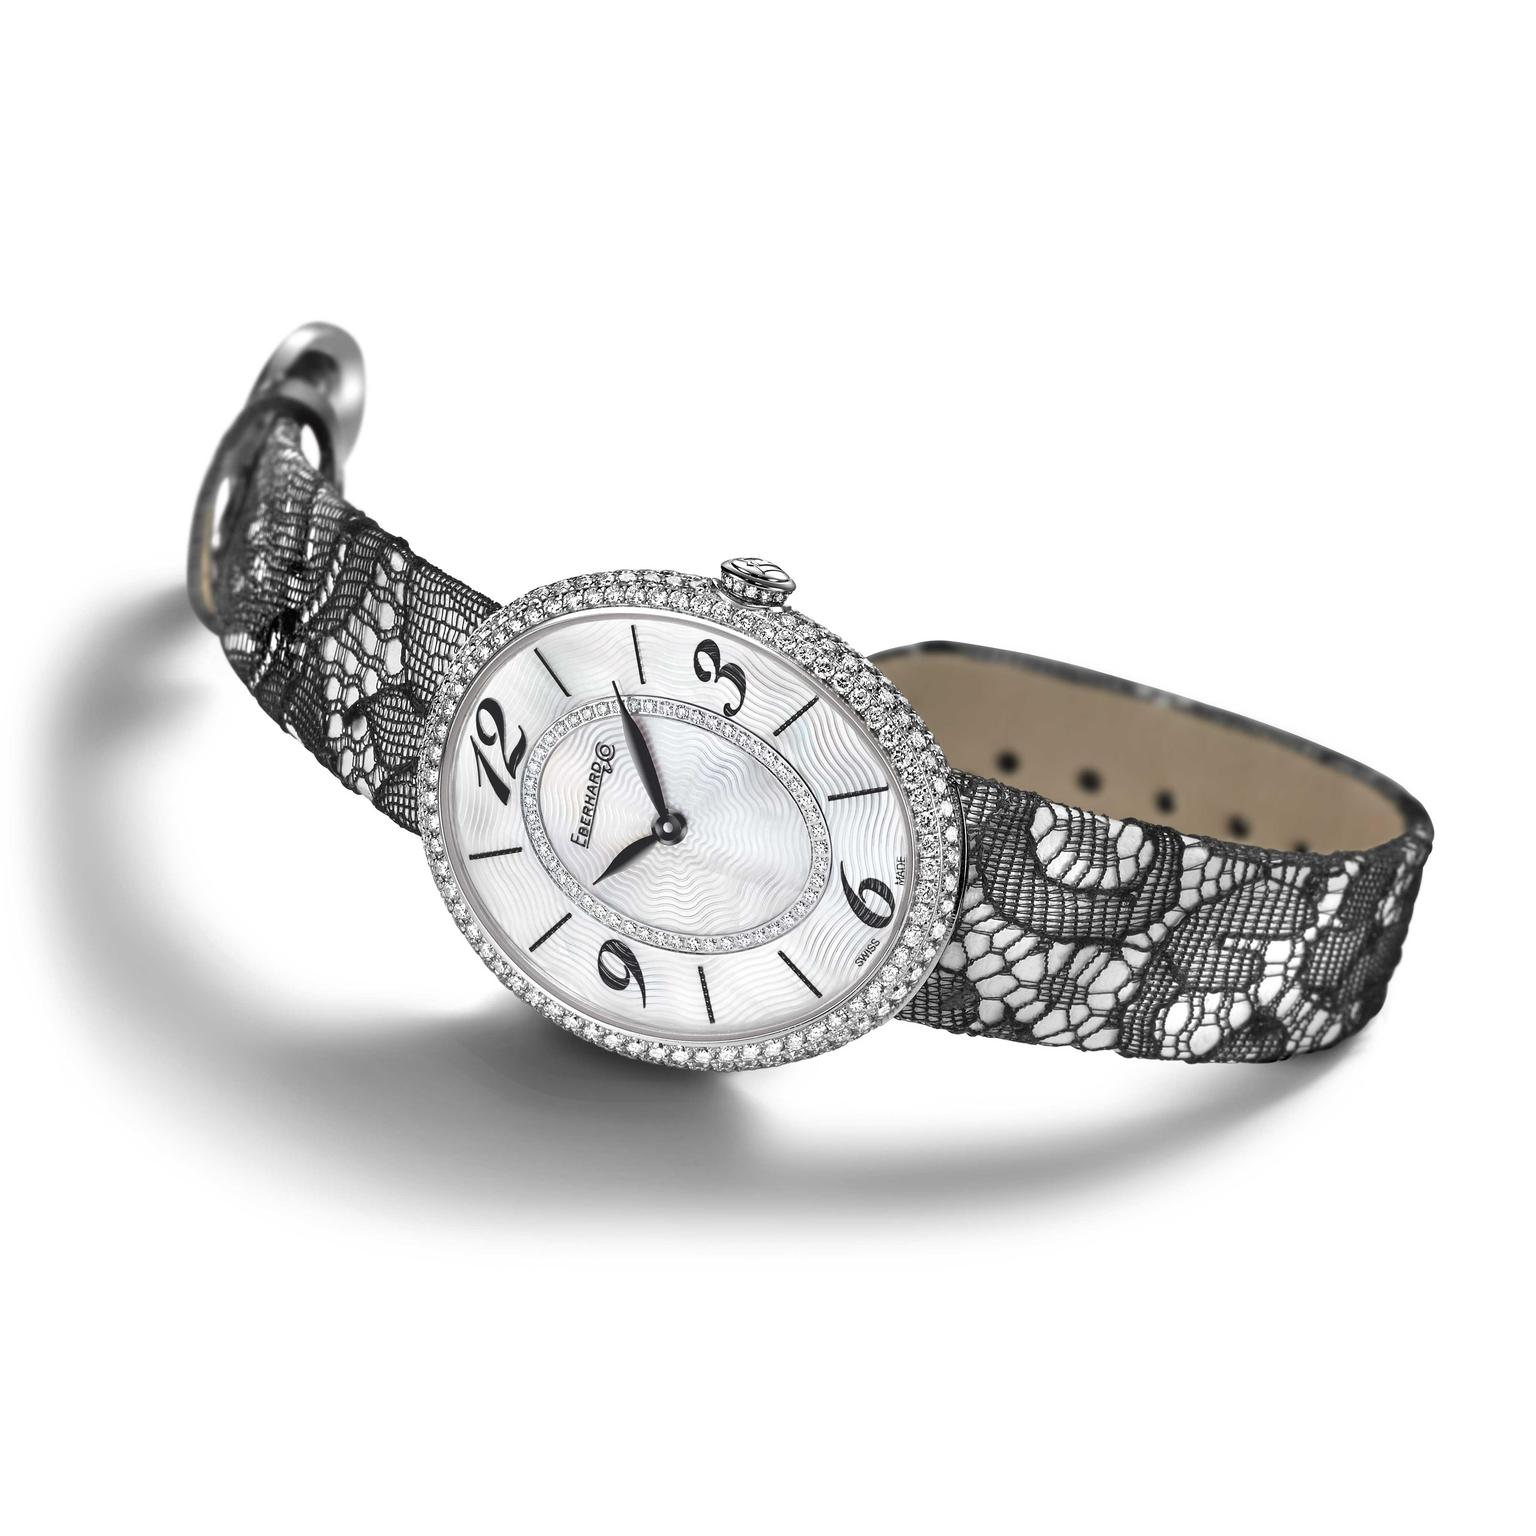 Eberhard-and-co-GILDA-Grand-Pave-watch